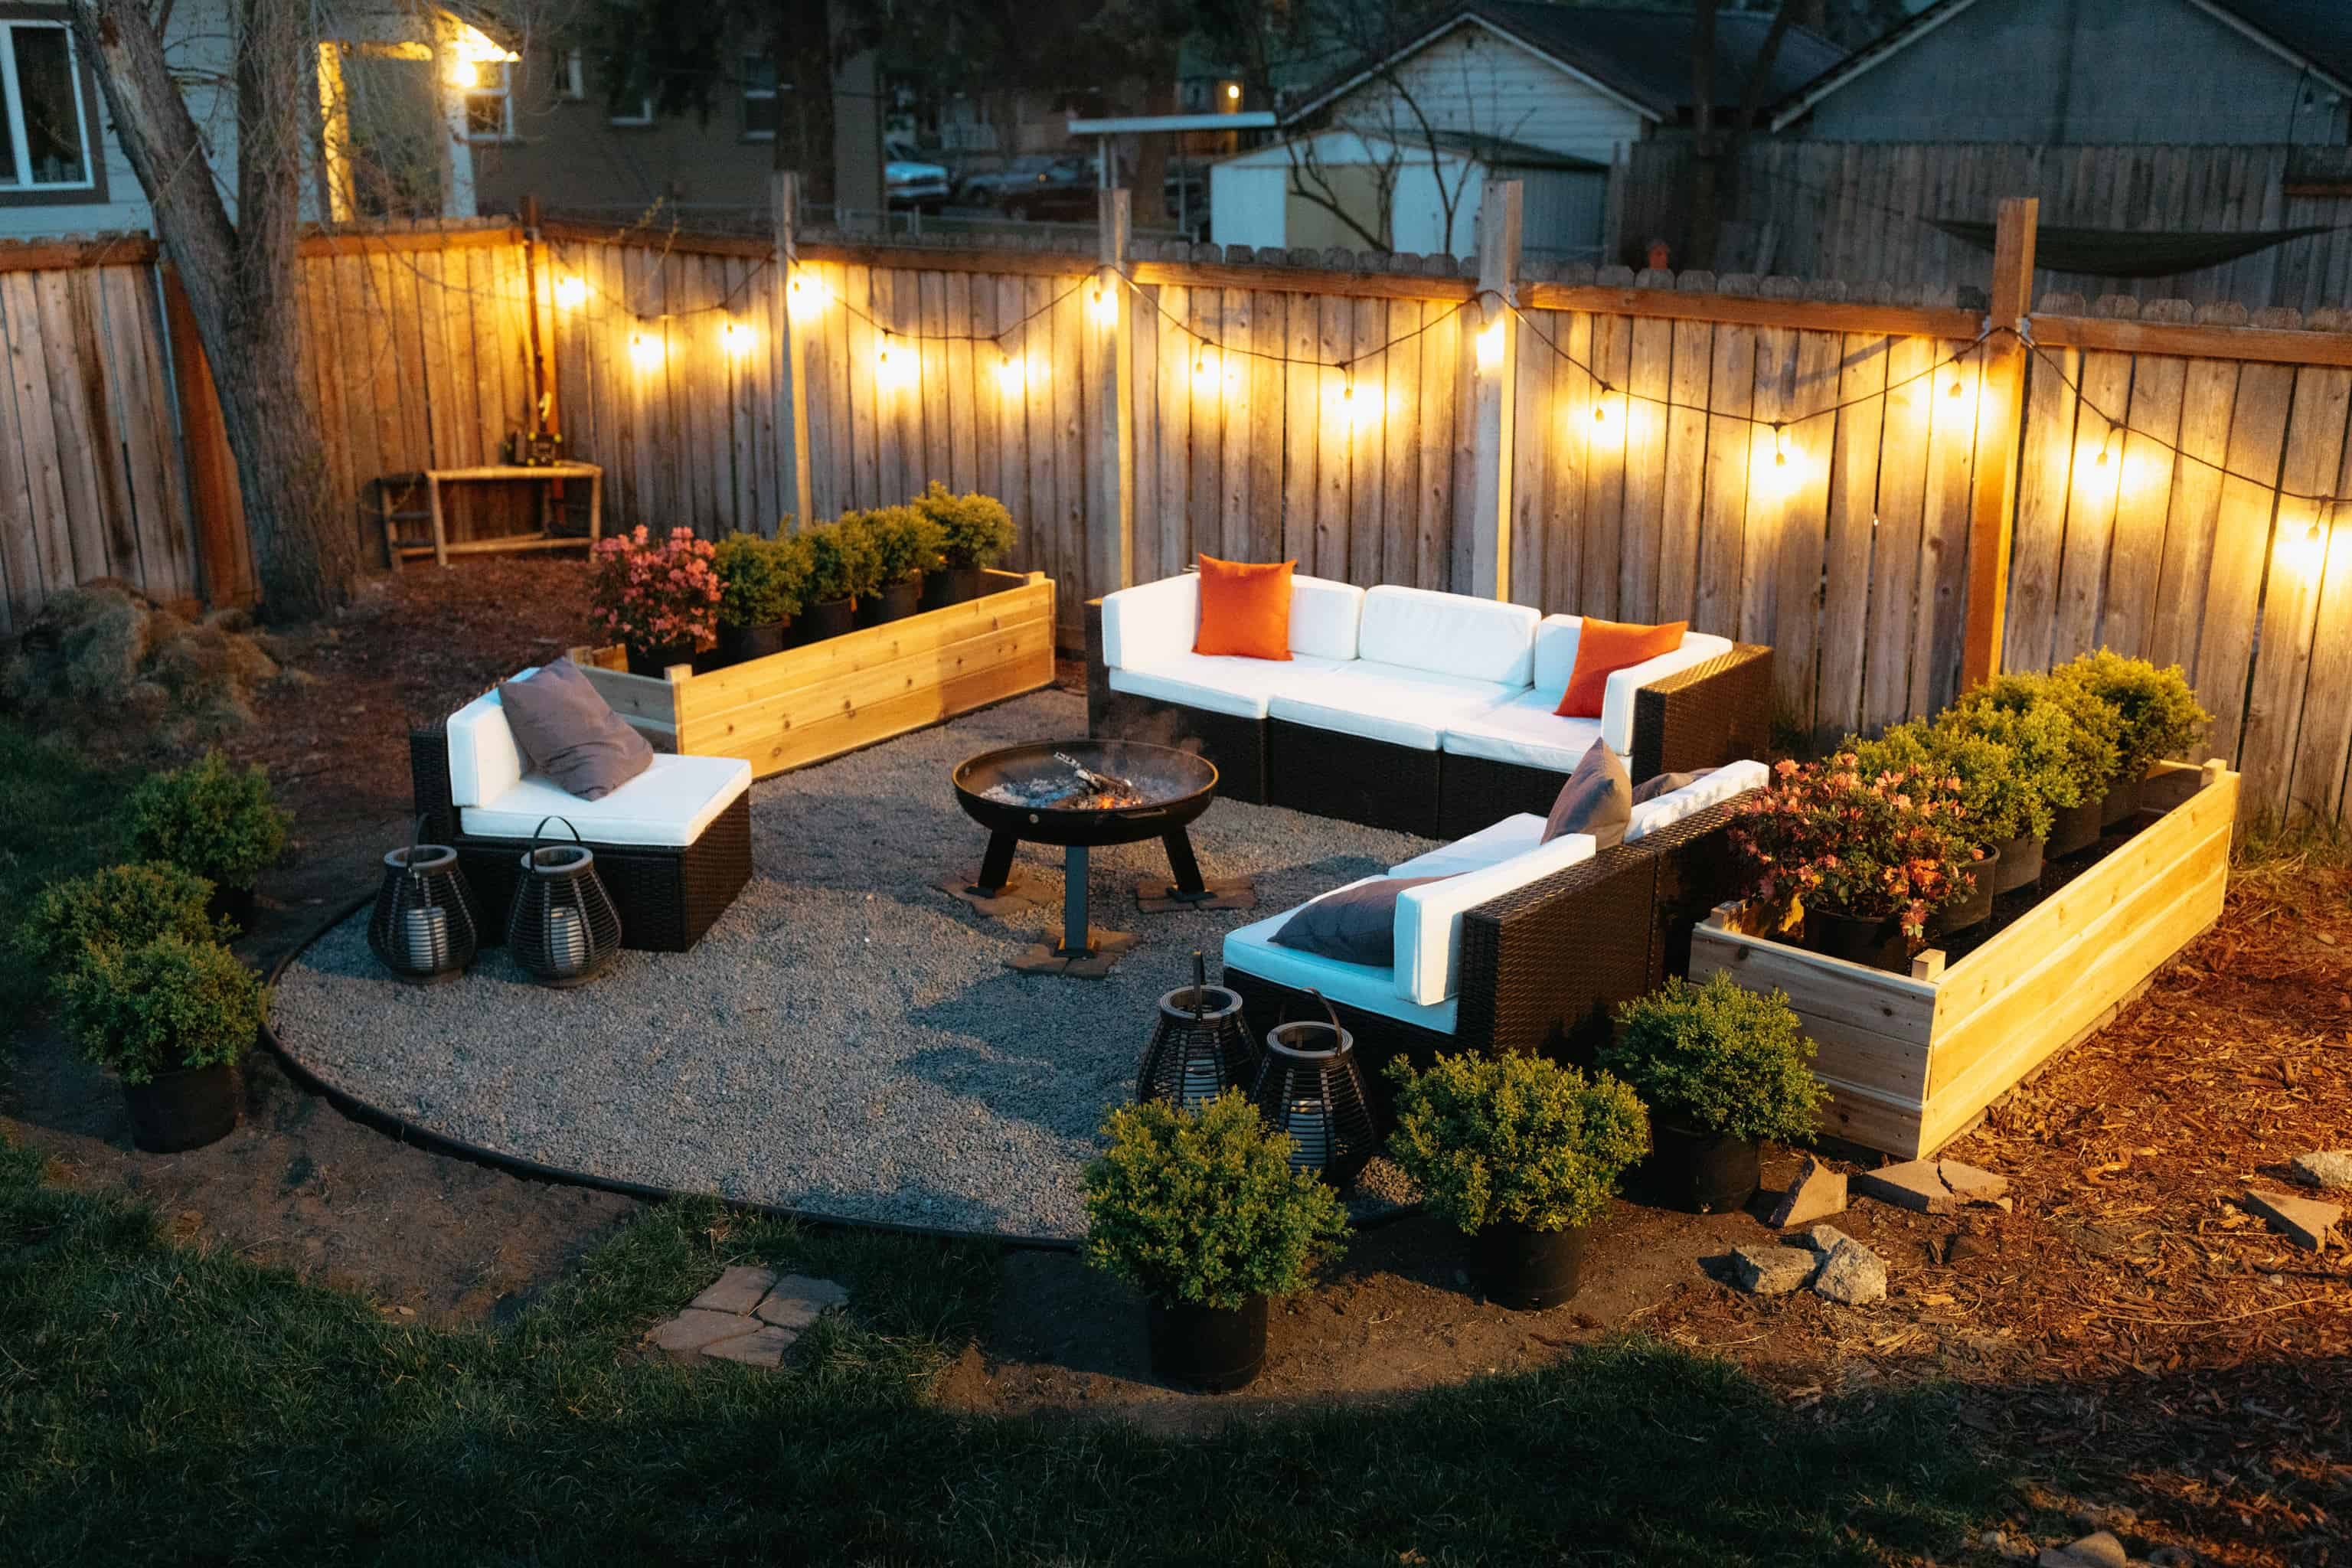 How We Built a Low-Budget Backyard Fire Pit (Step-By-Step Guide + Price Breakdown!)